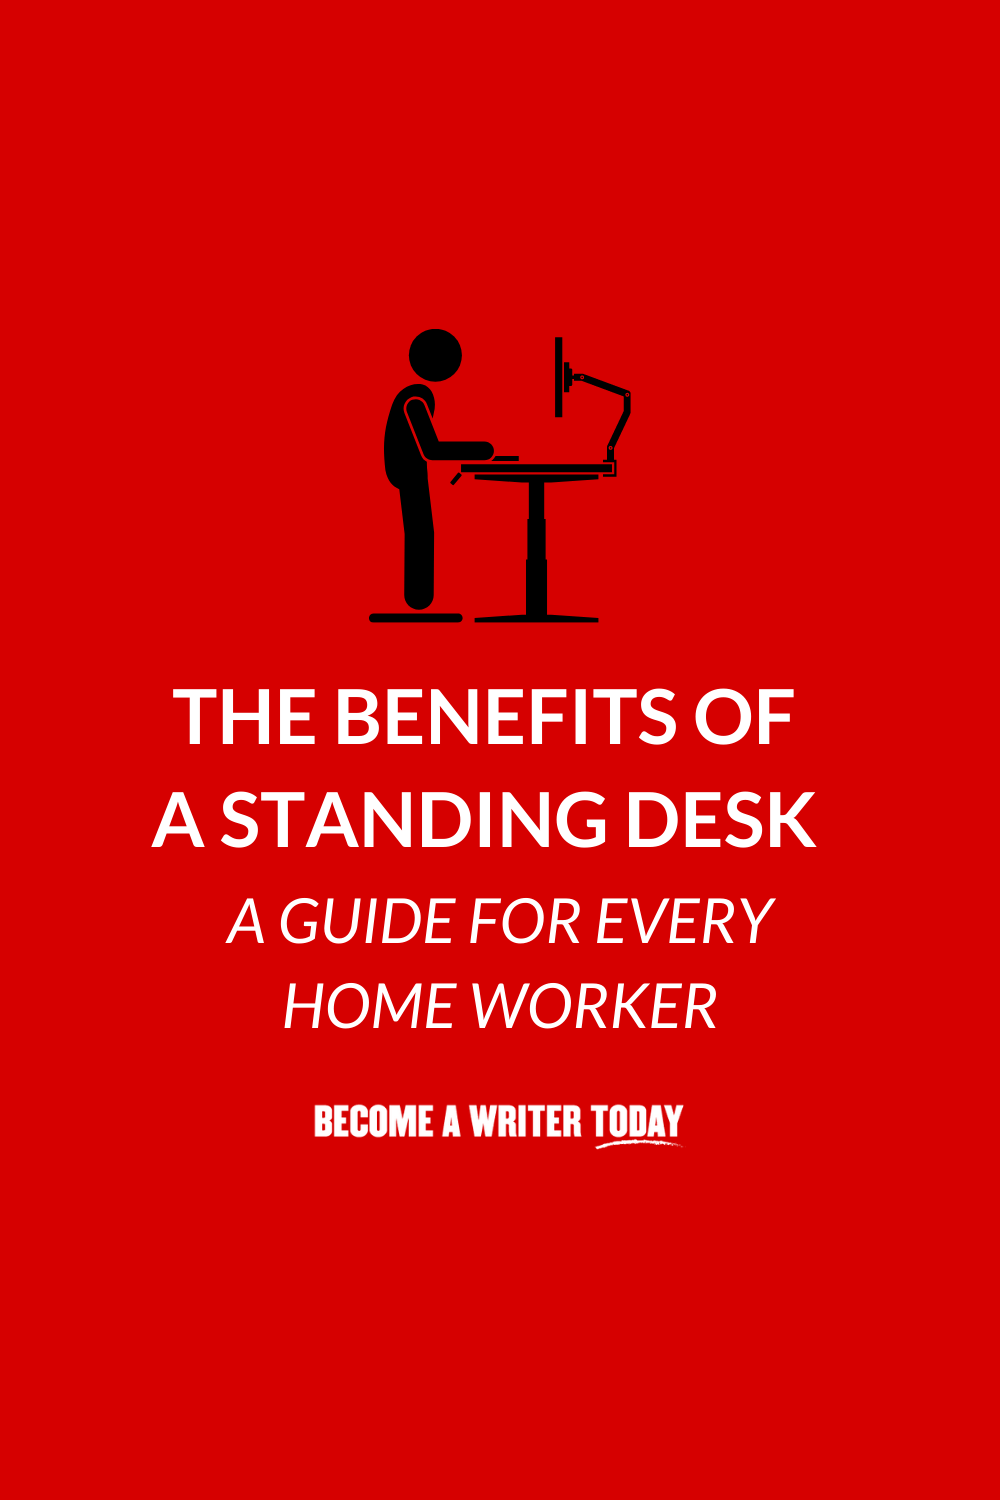 7 Surprising Benefits of a Standing Desk: A Guide for Every Home Worker